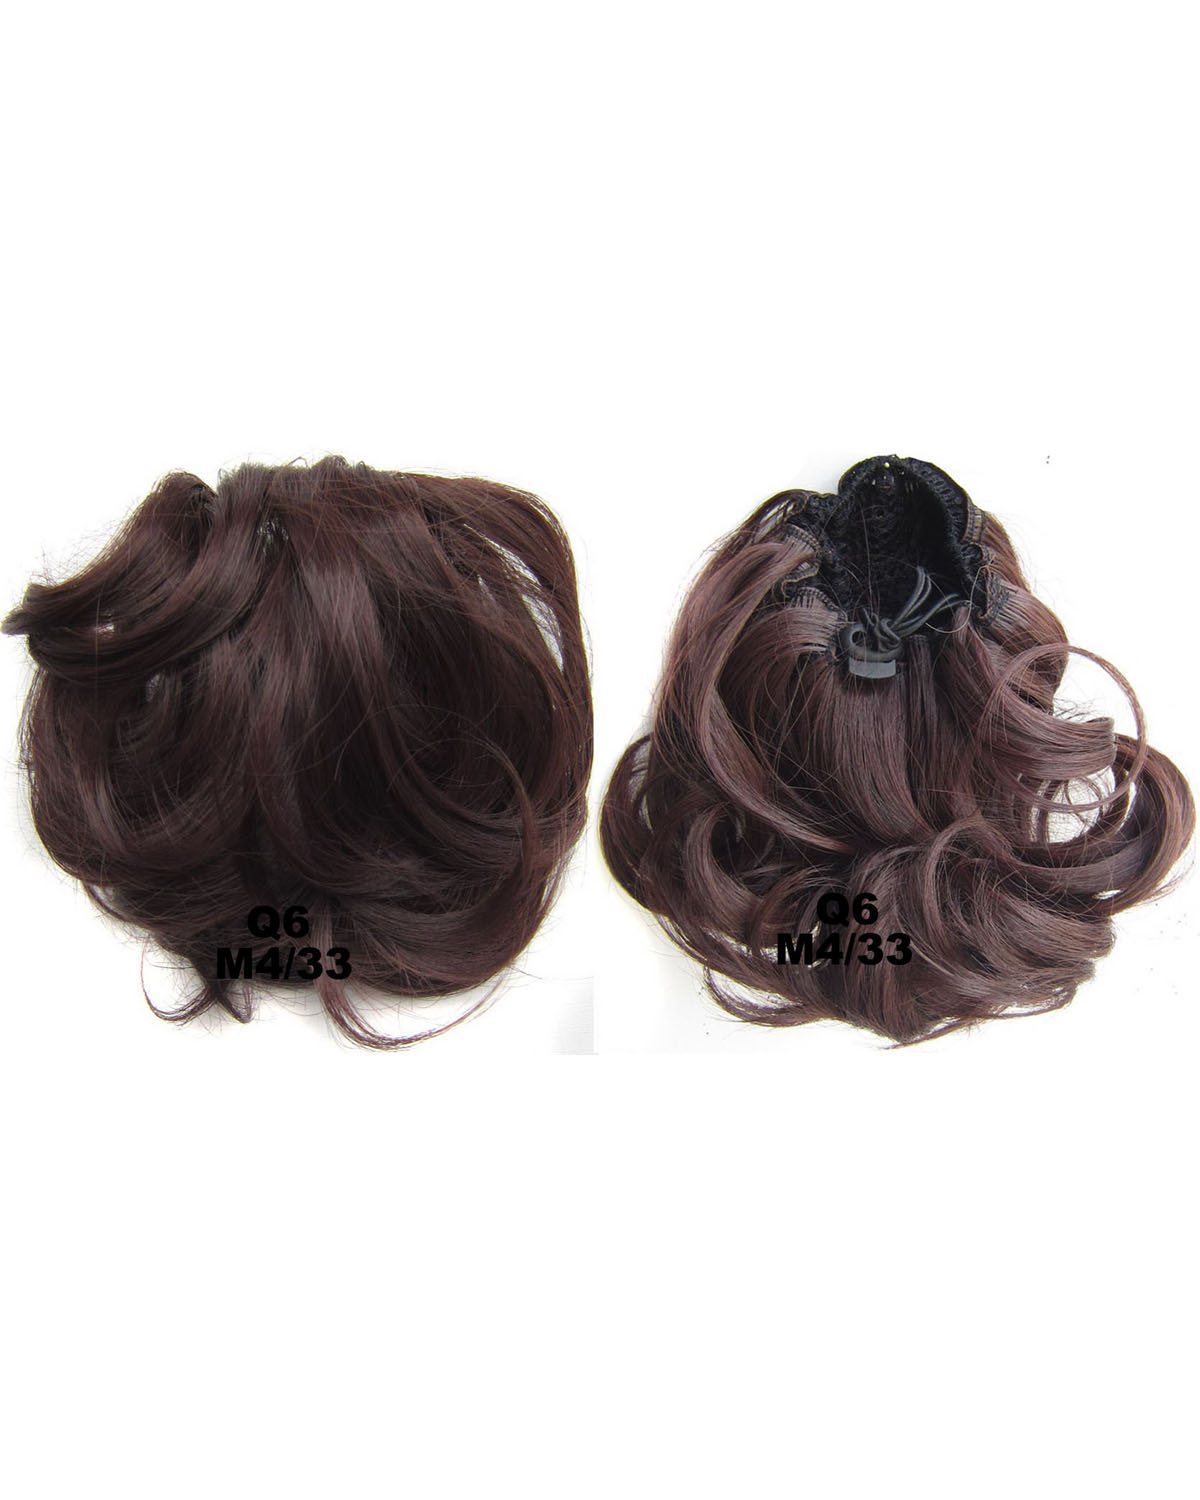 Ladies Fashional and Popular  Curly and Short Hair Buns Drawstring Synthetic Hair Extension Bride Scrunchies M4/33